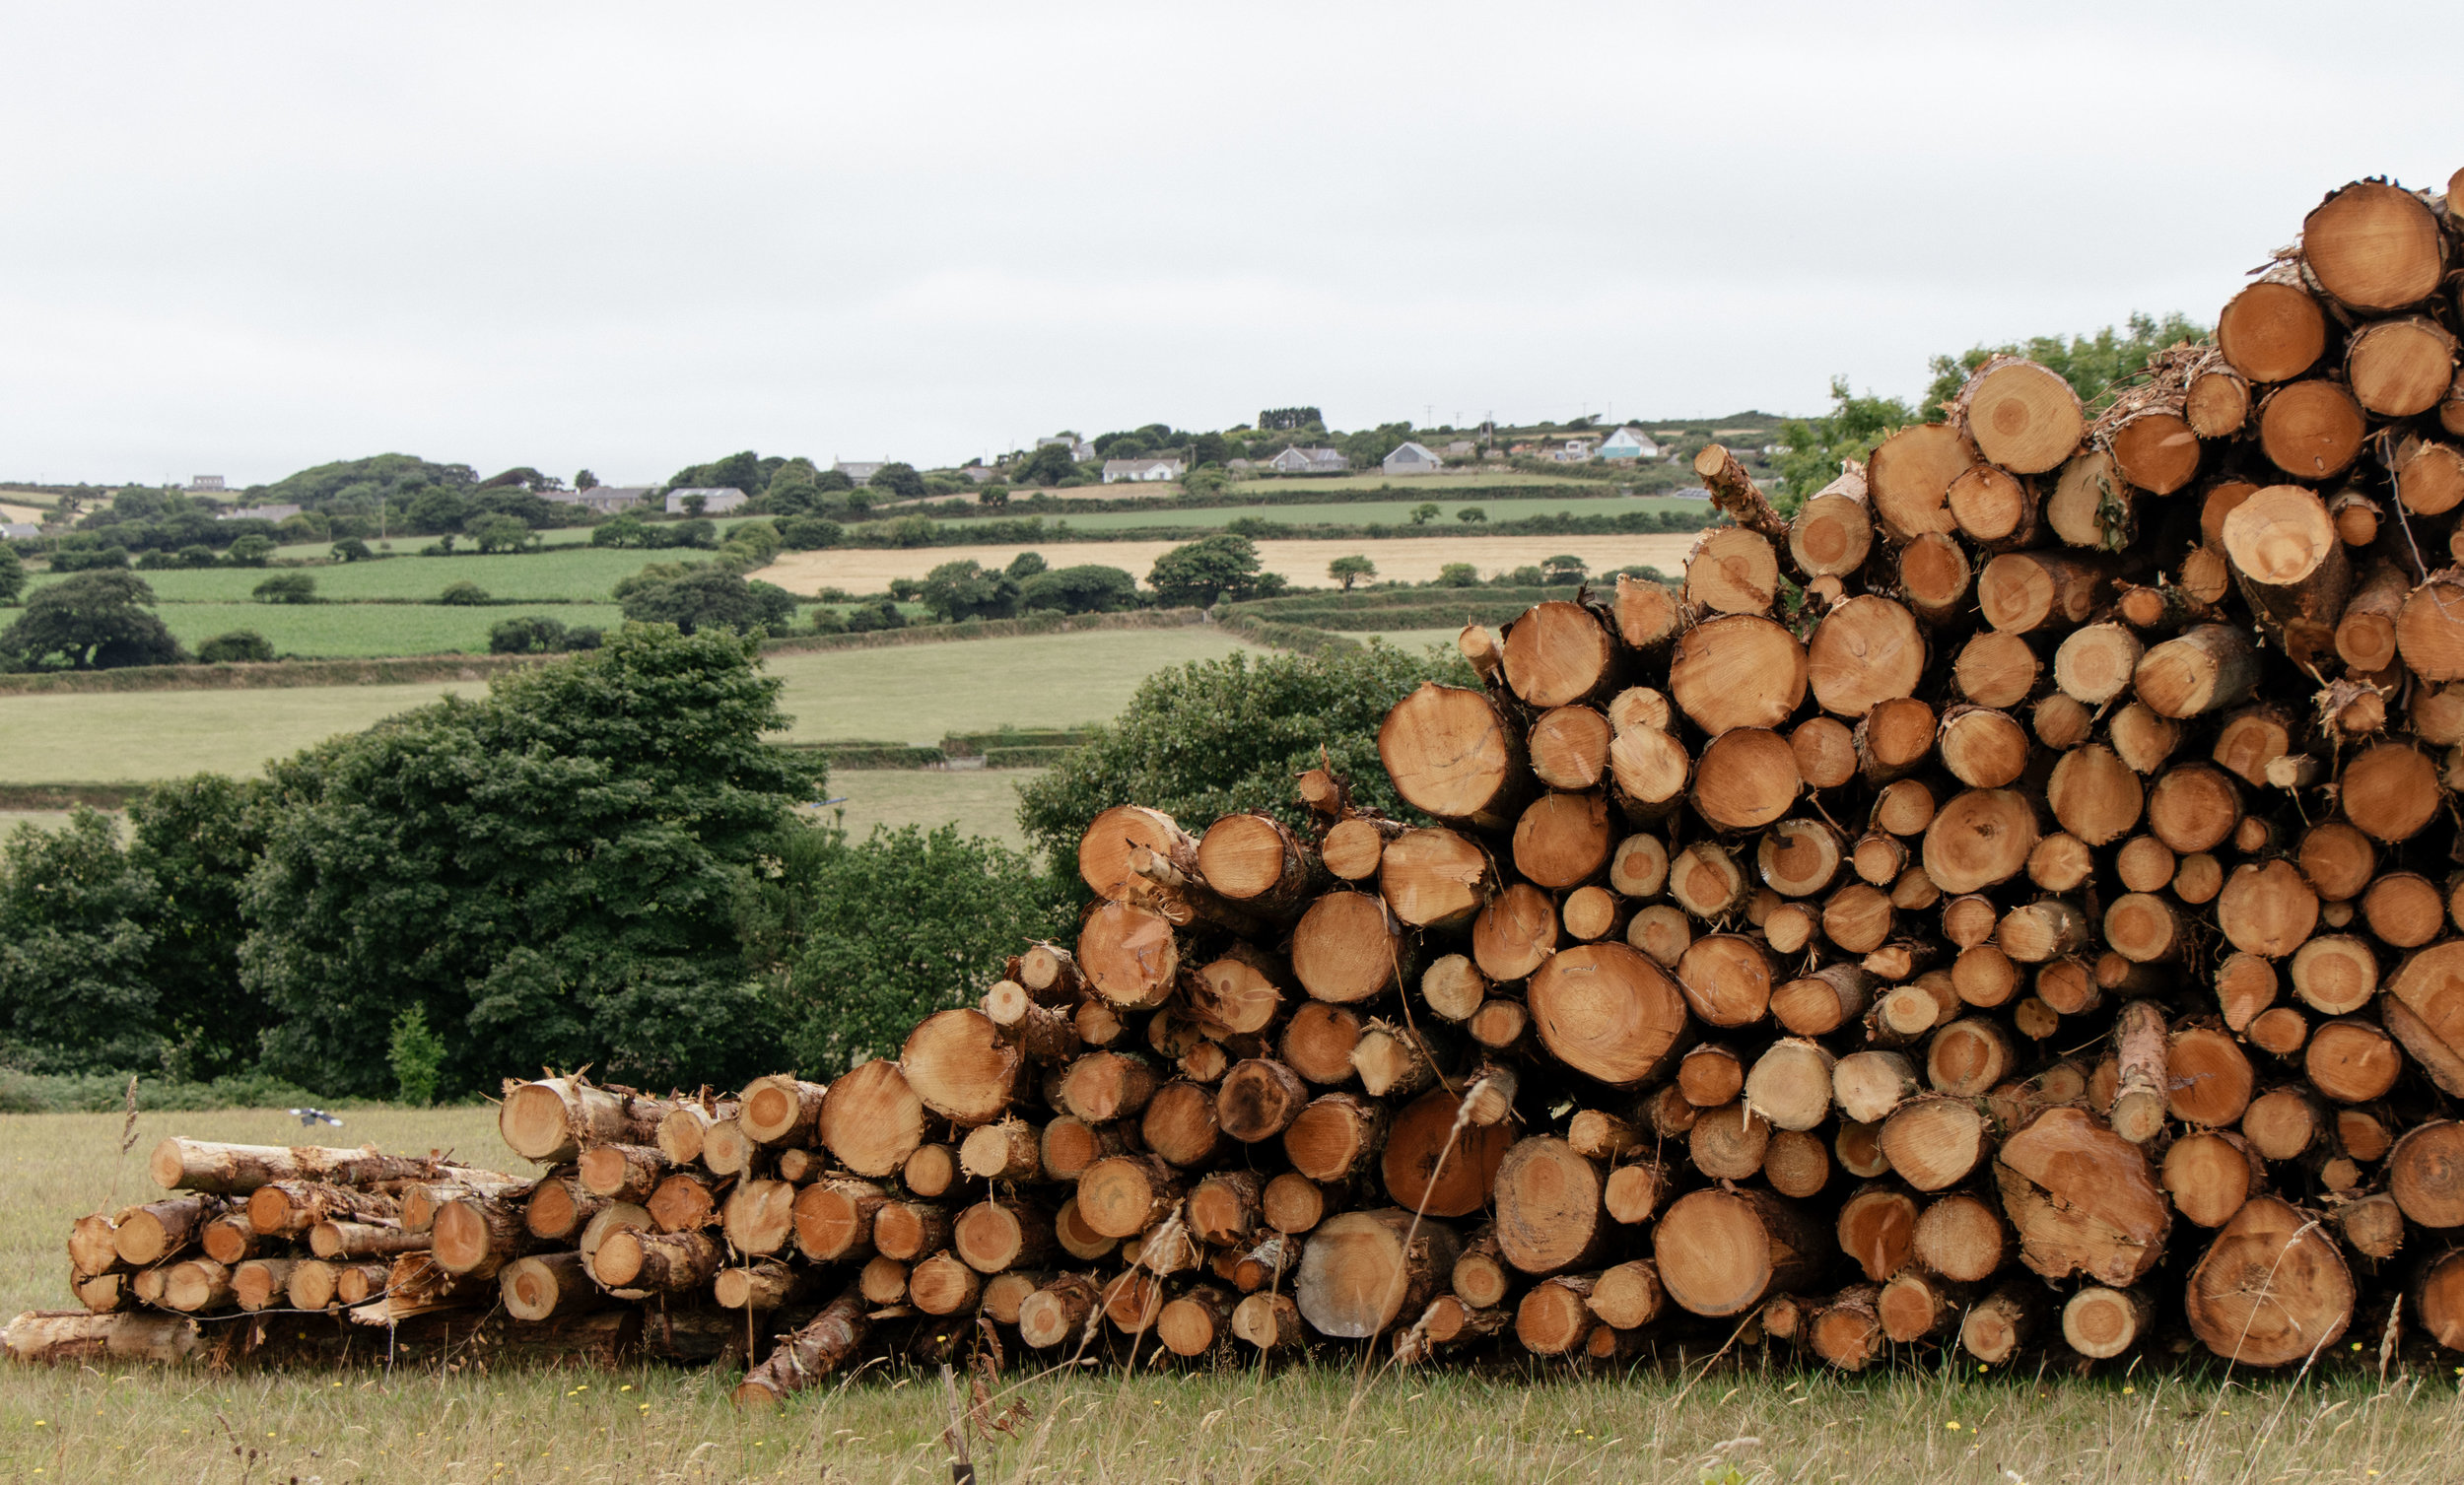 Large stack of logs ready for the biomass boiler lie on a field at Argal Home Farm, with farmland and hedges in the background.